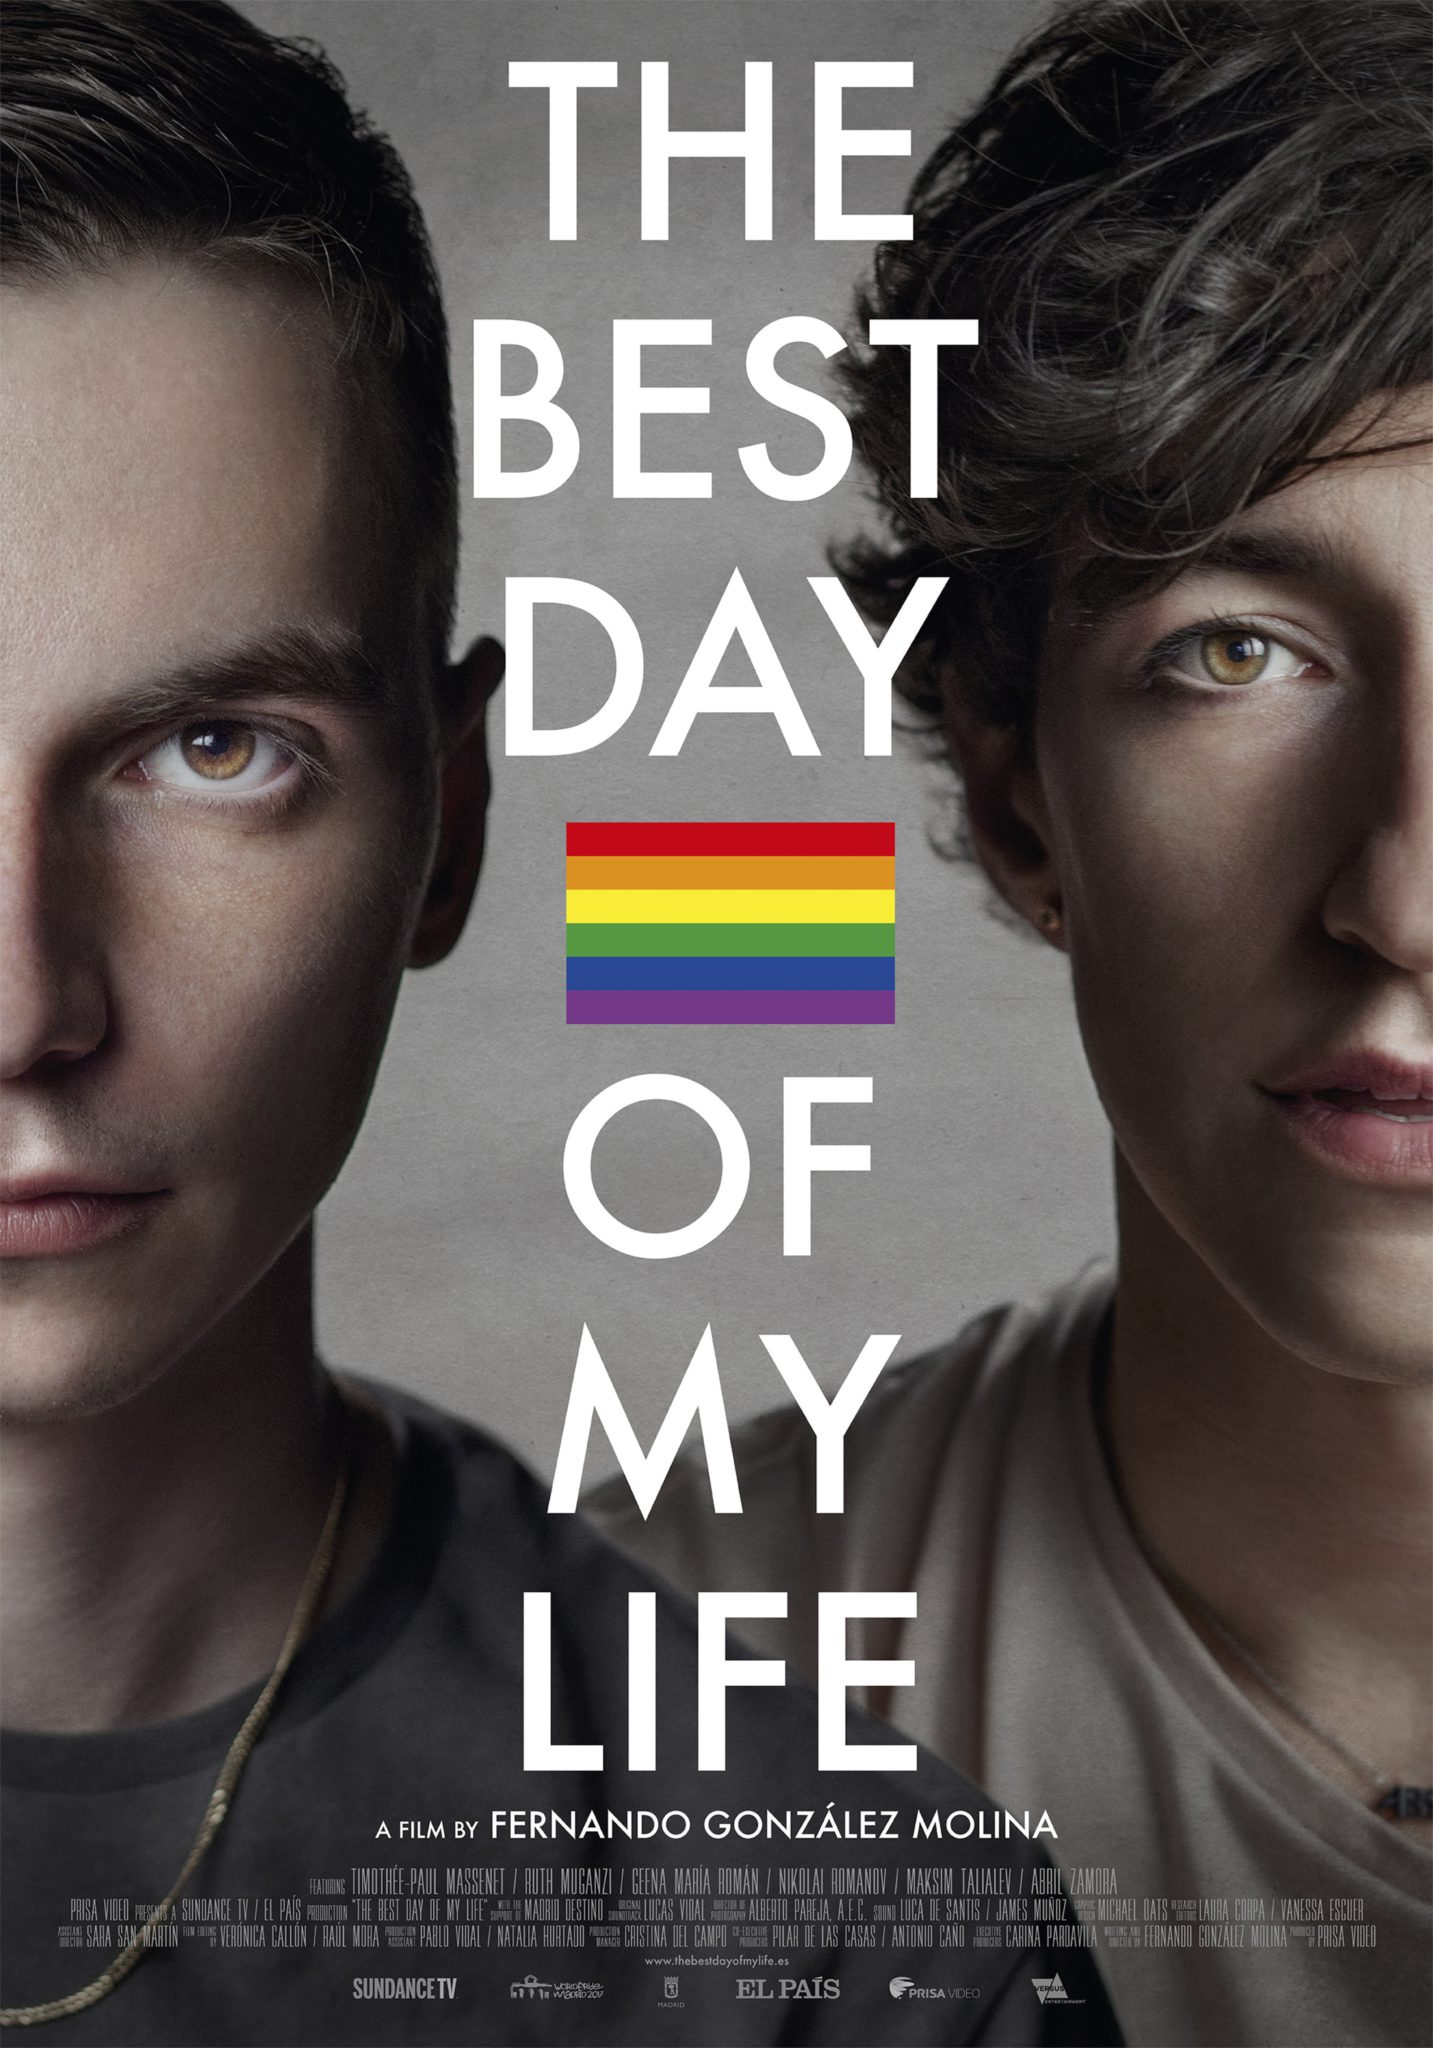 poster-final-the-best-day-of-my-life-the-best-day-of-my-life--estreno-16-de-marzo